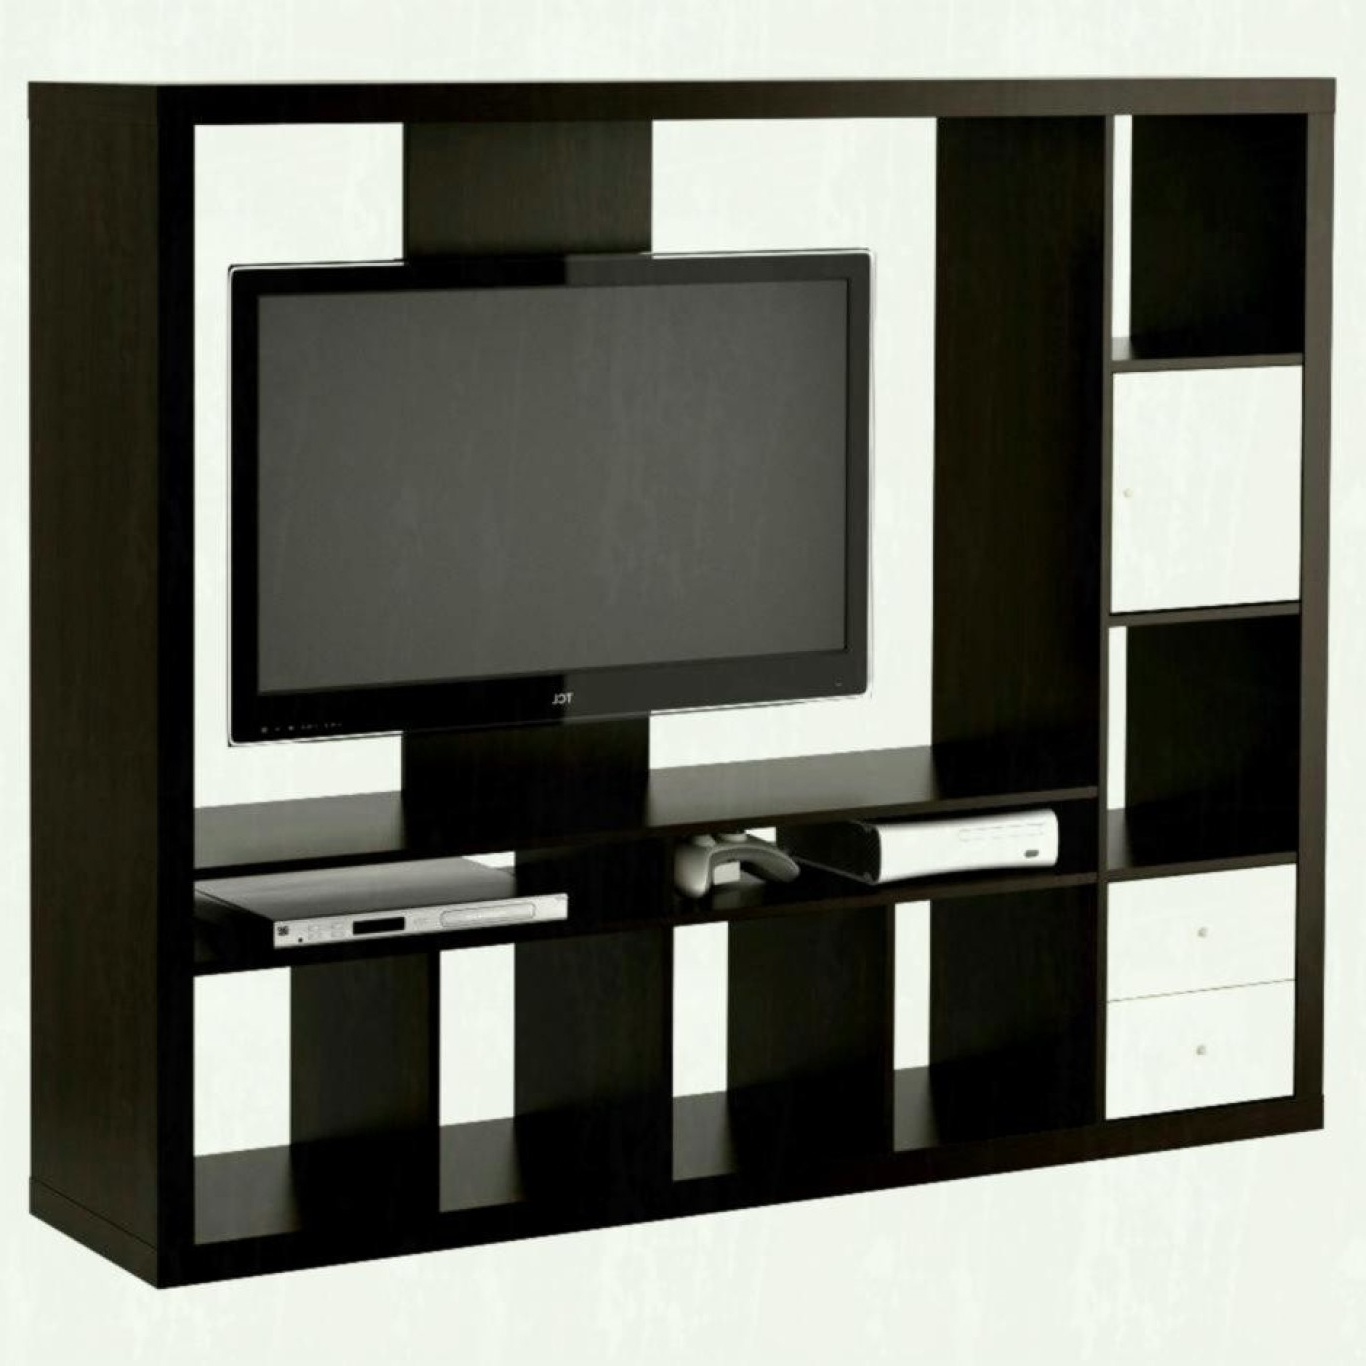 Cool Tv Stands With Regard To Latest Cool Tv Unit Ideas Tv Stand Own Theories For Living Room Tv Stand (View 18 of 20)